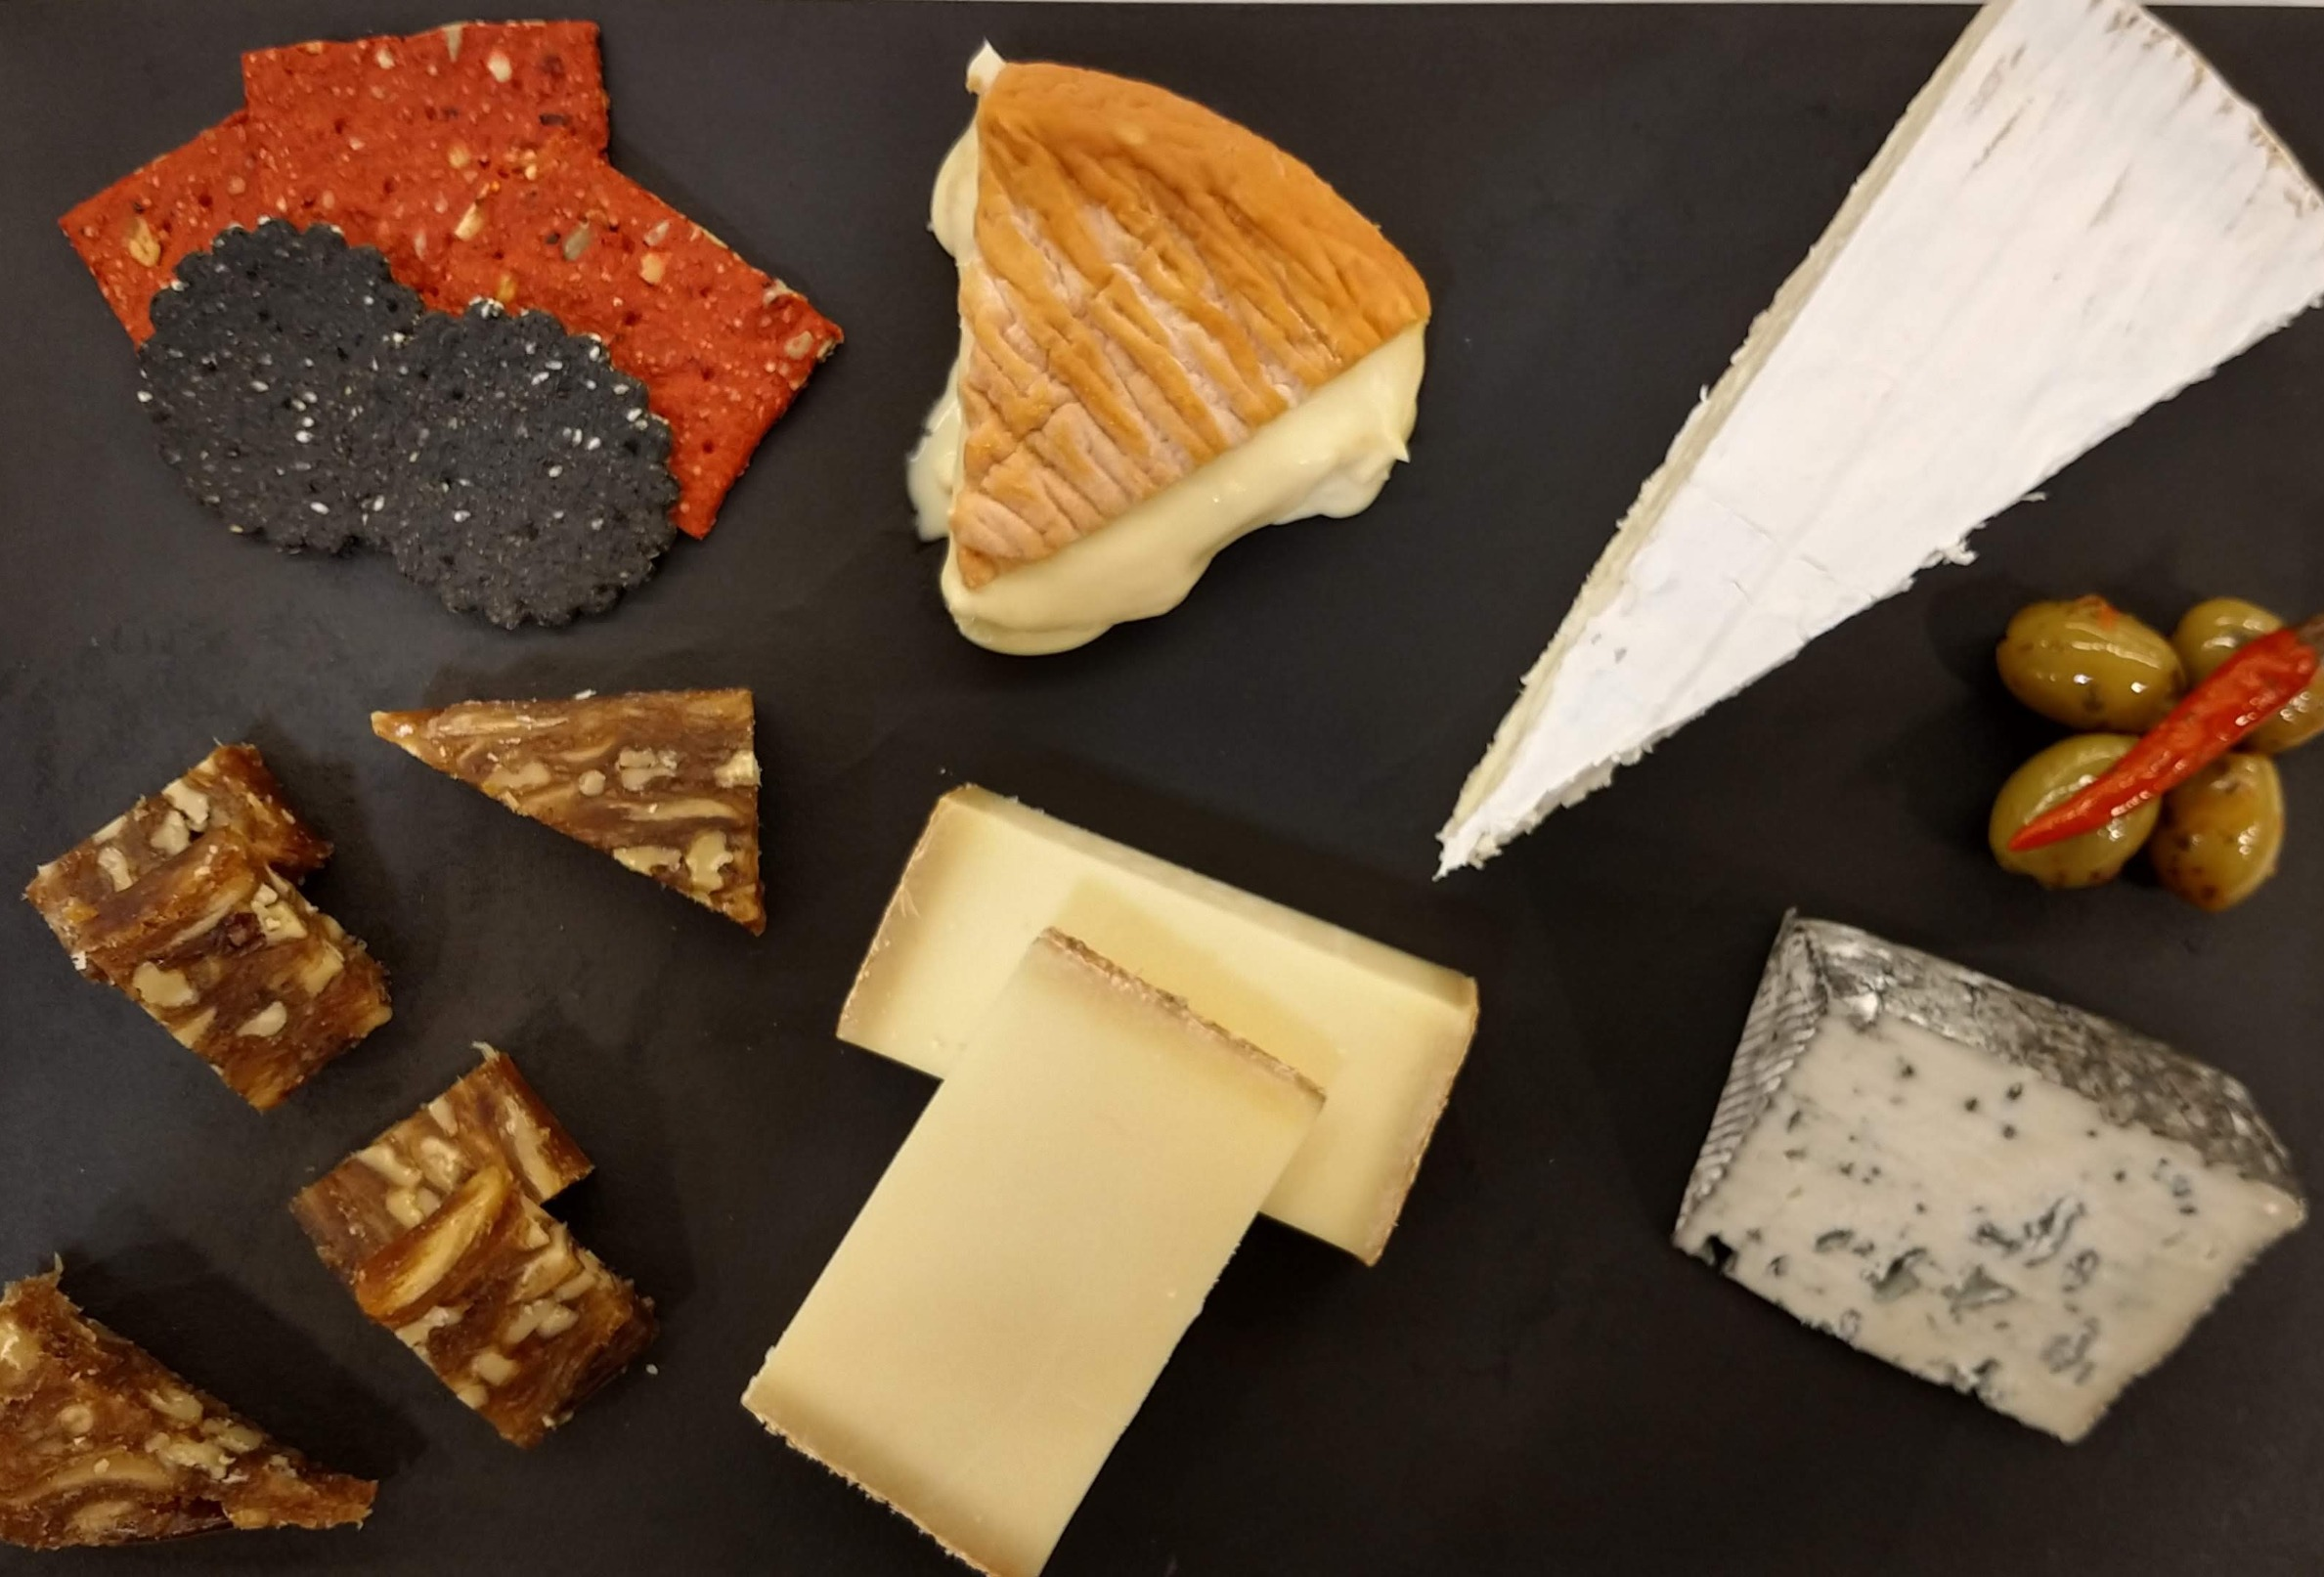 A vibrant cheese board designed by the Cheesy1.